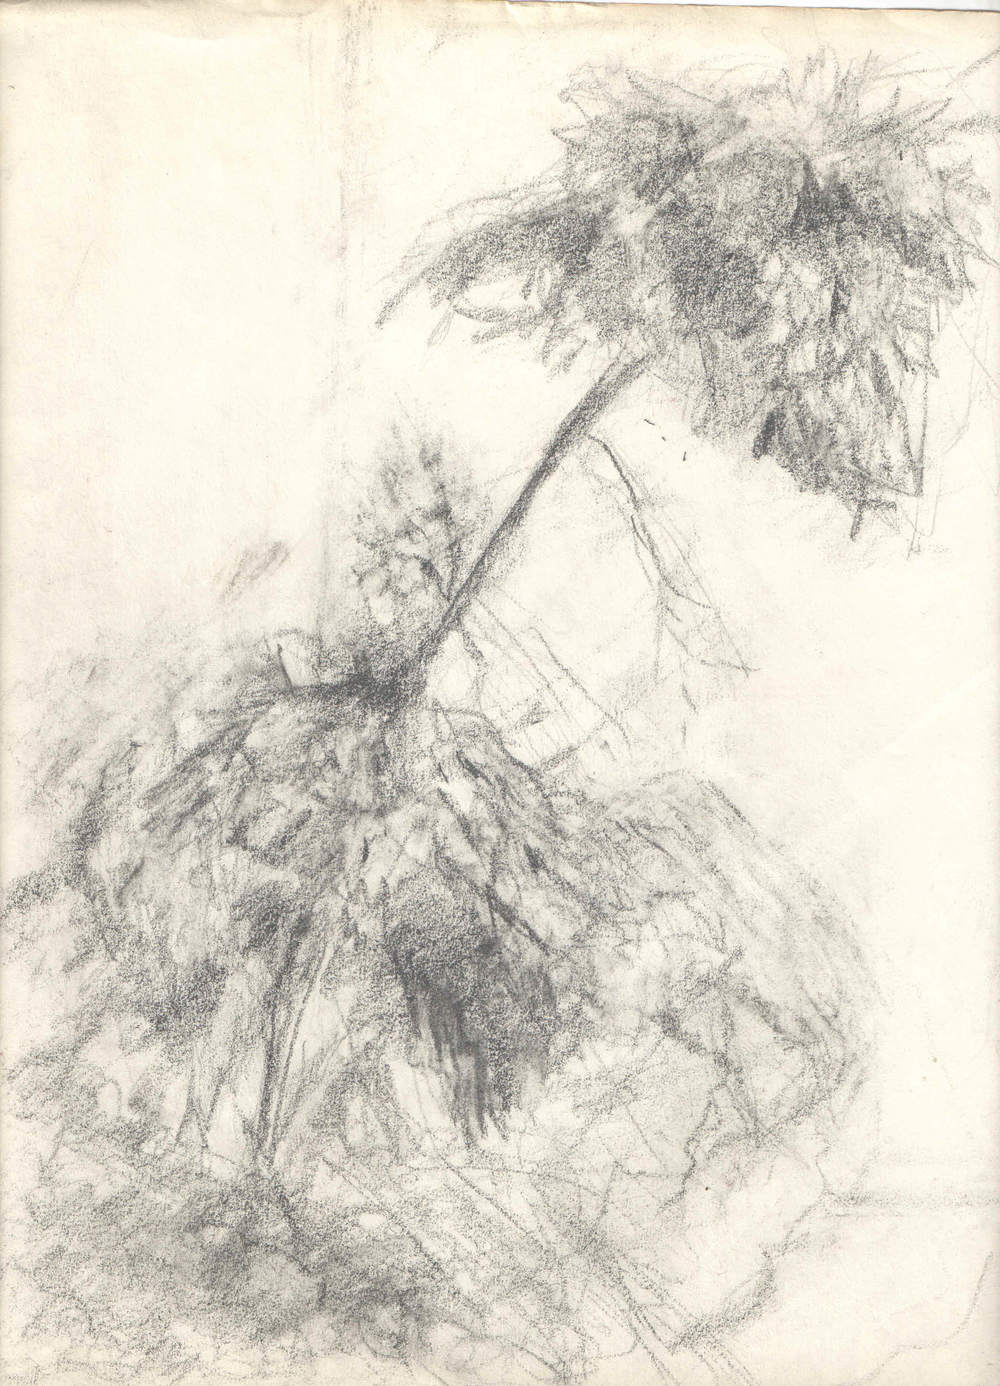 Tree Abstract Pencil on paper 8x11""